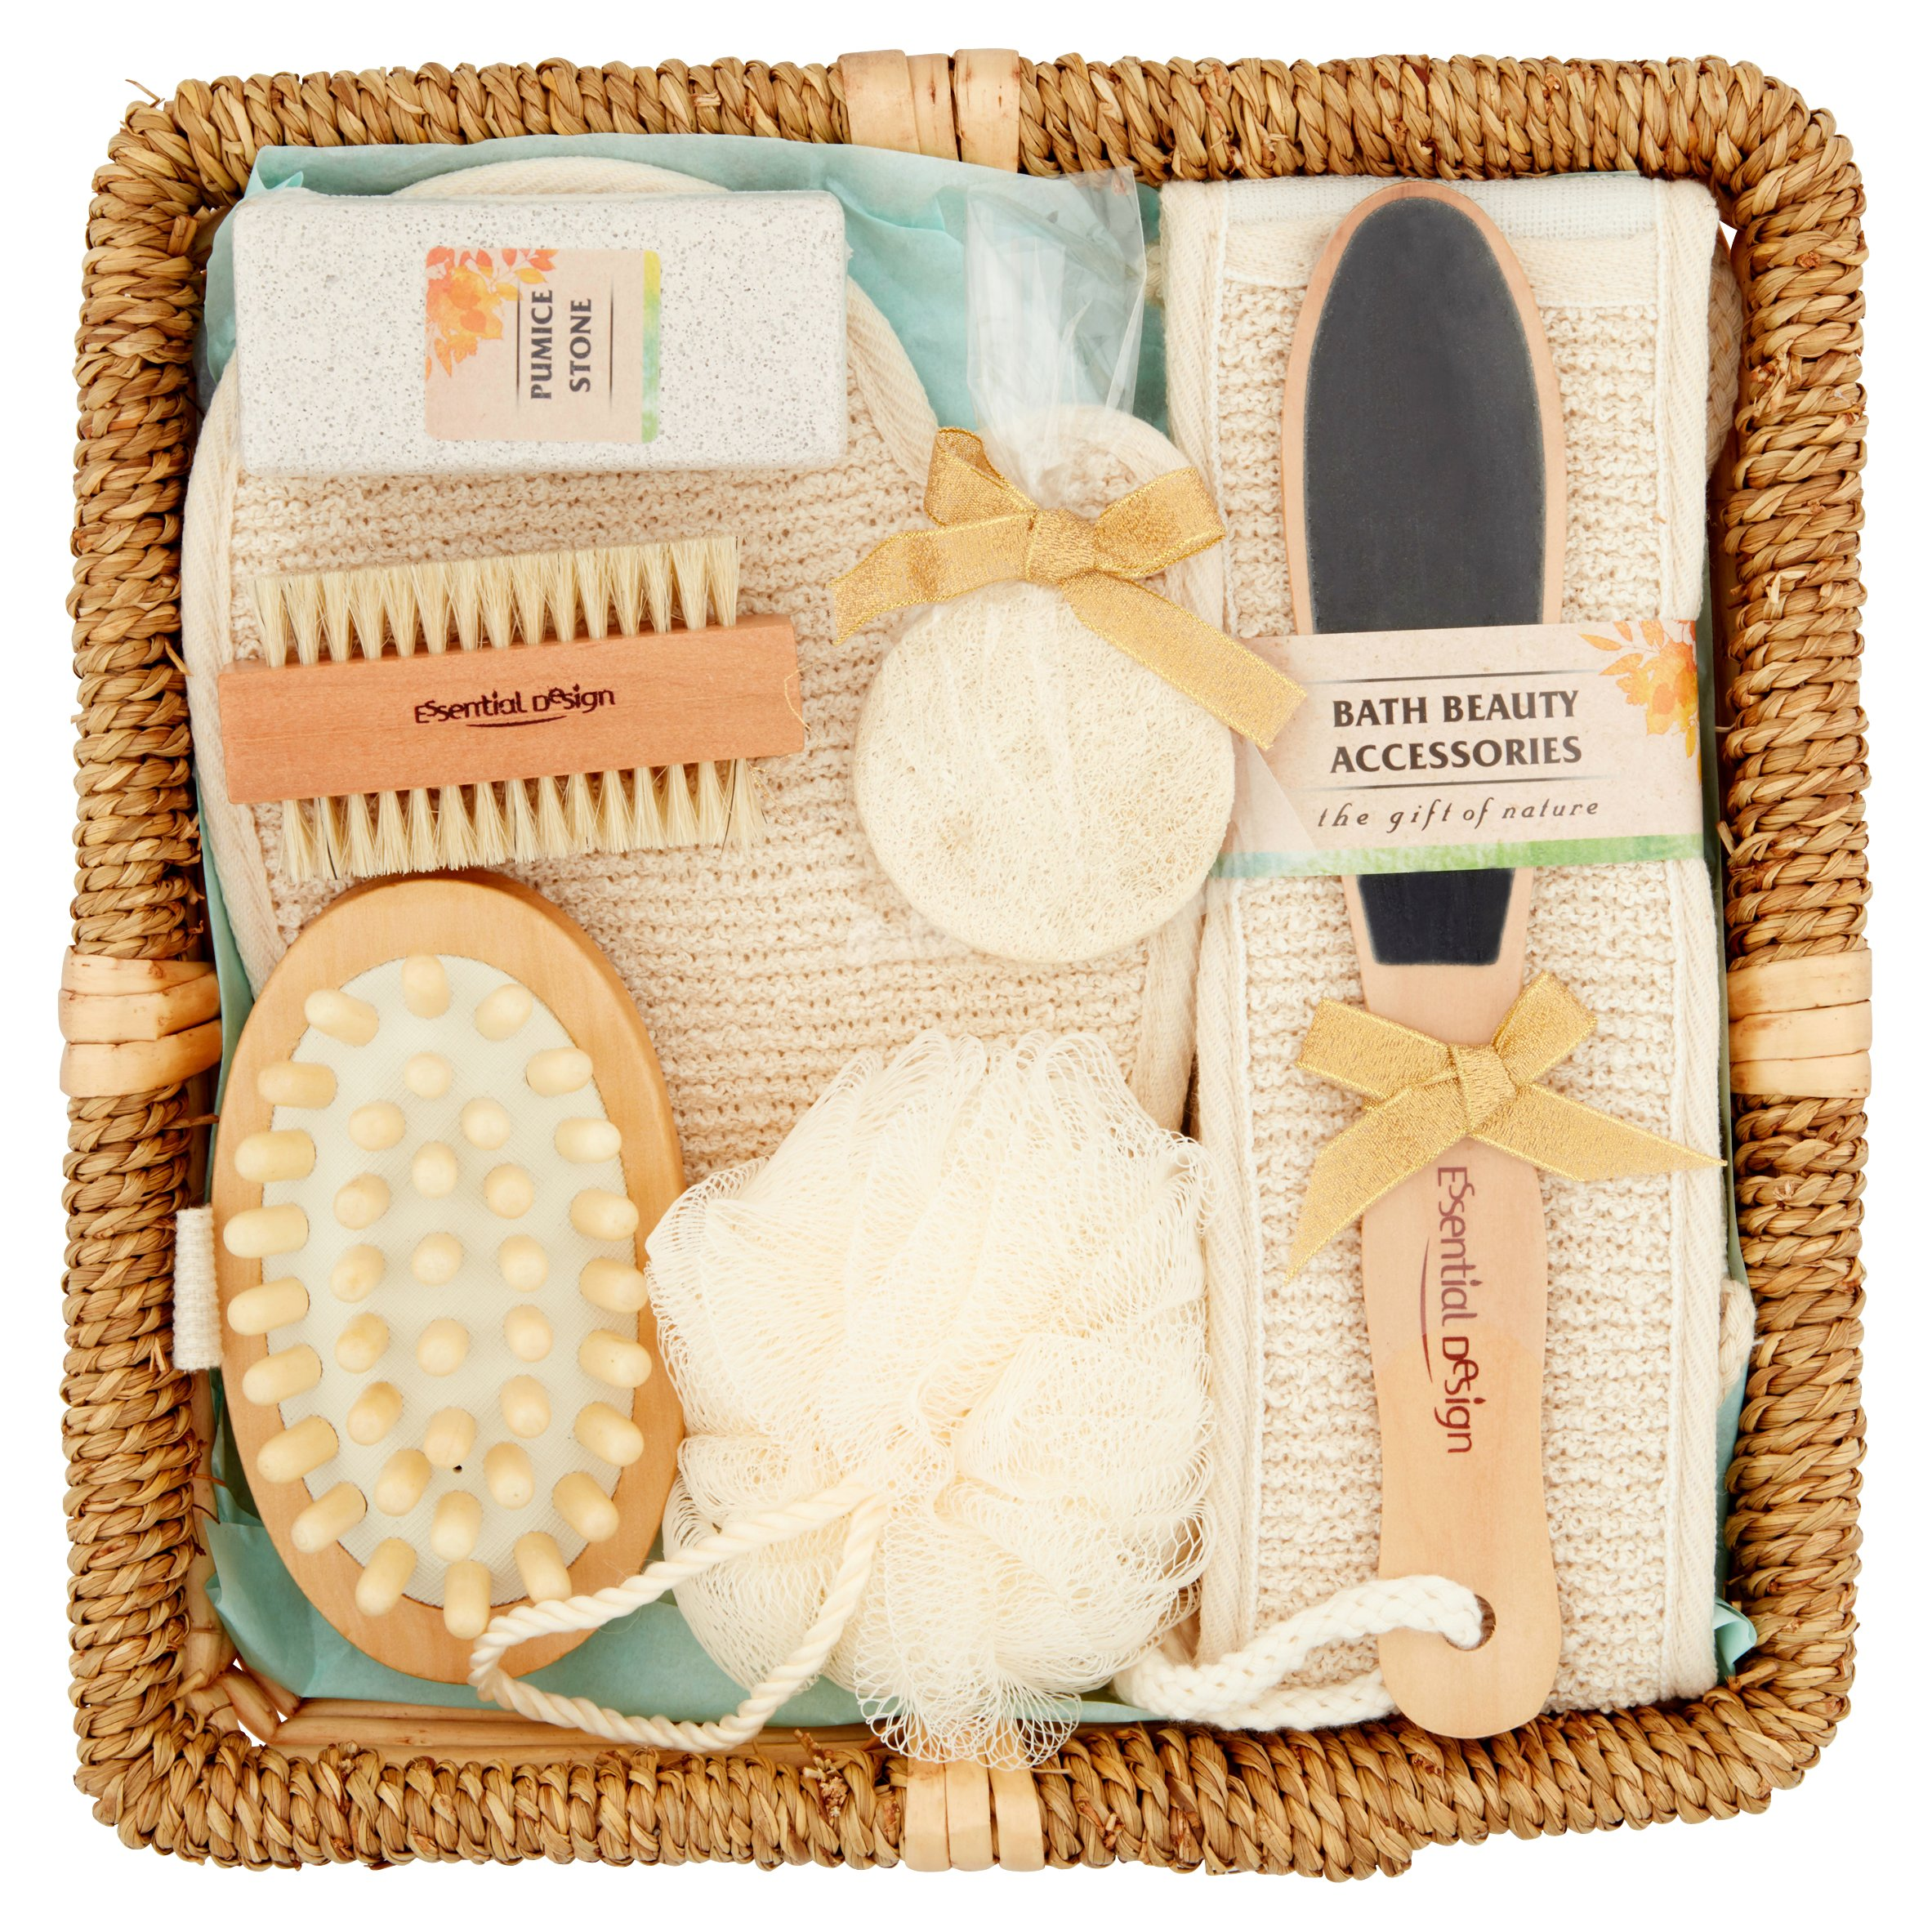 Essential Design Bath Accessories Gift Set in a Wicker Basket, 9pcs by NINGBO CIXI IMP&EXP HOLDINGS COLTD